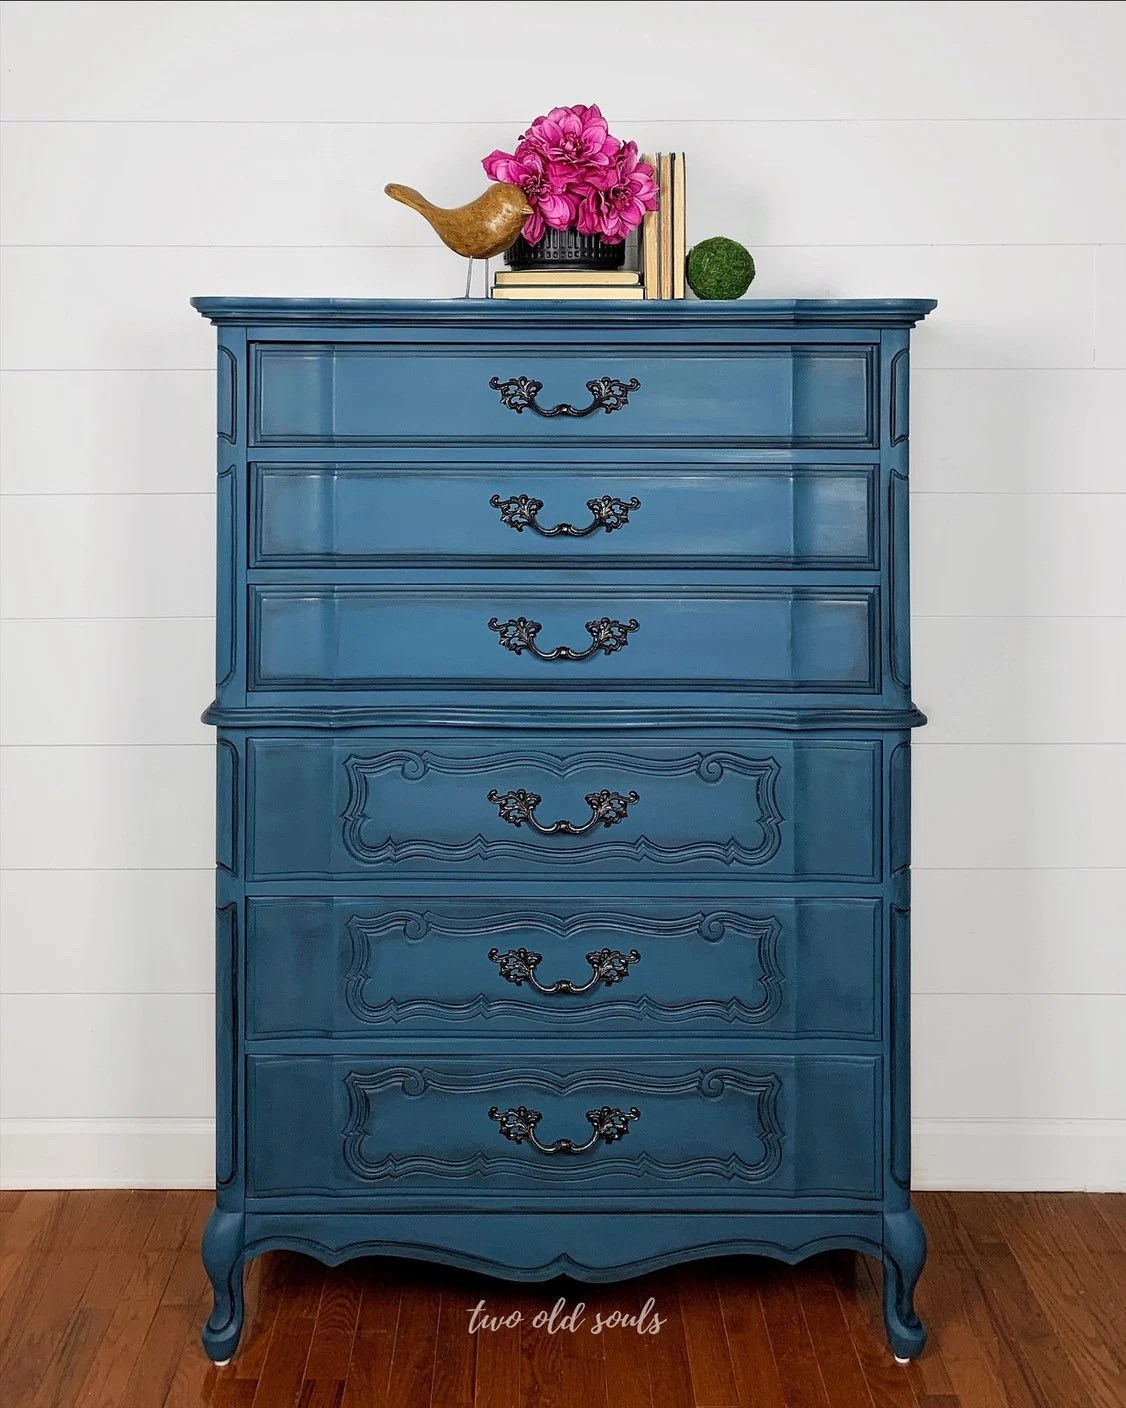 6 Drawer Chest Of Drawers Blue Vintage French Provincial Tallboy 6 Drawer Chest Of Drawers Bedroom Dresser Bassett Master Suite Furniture